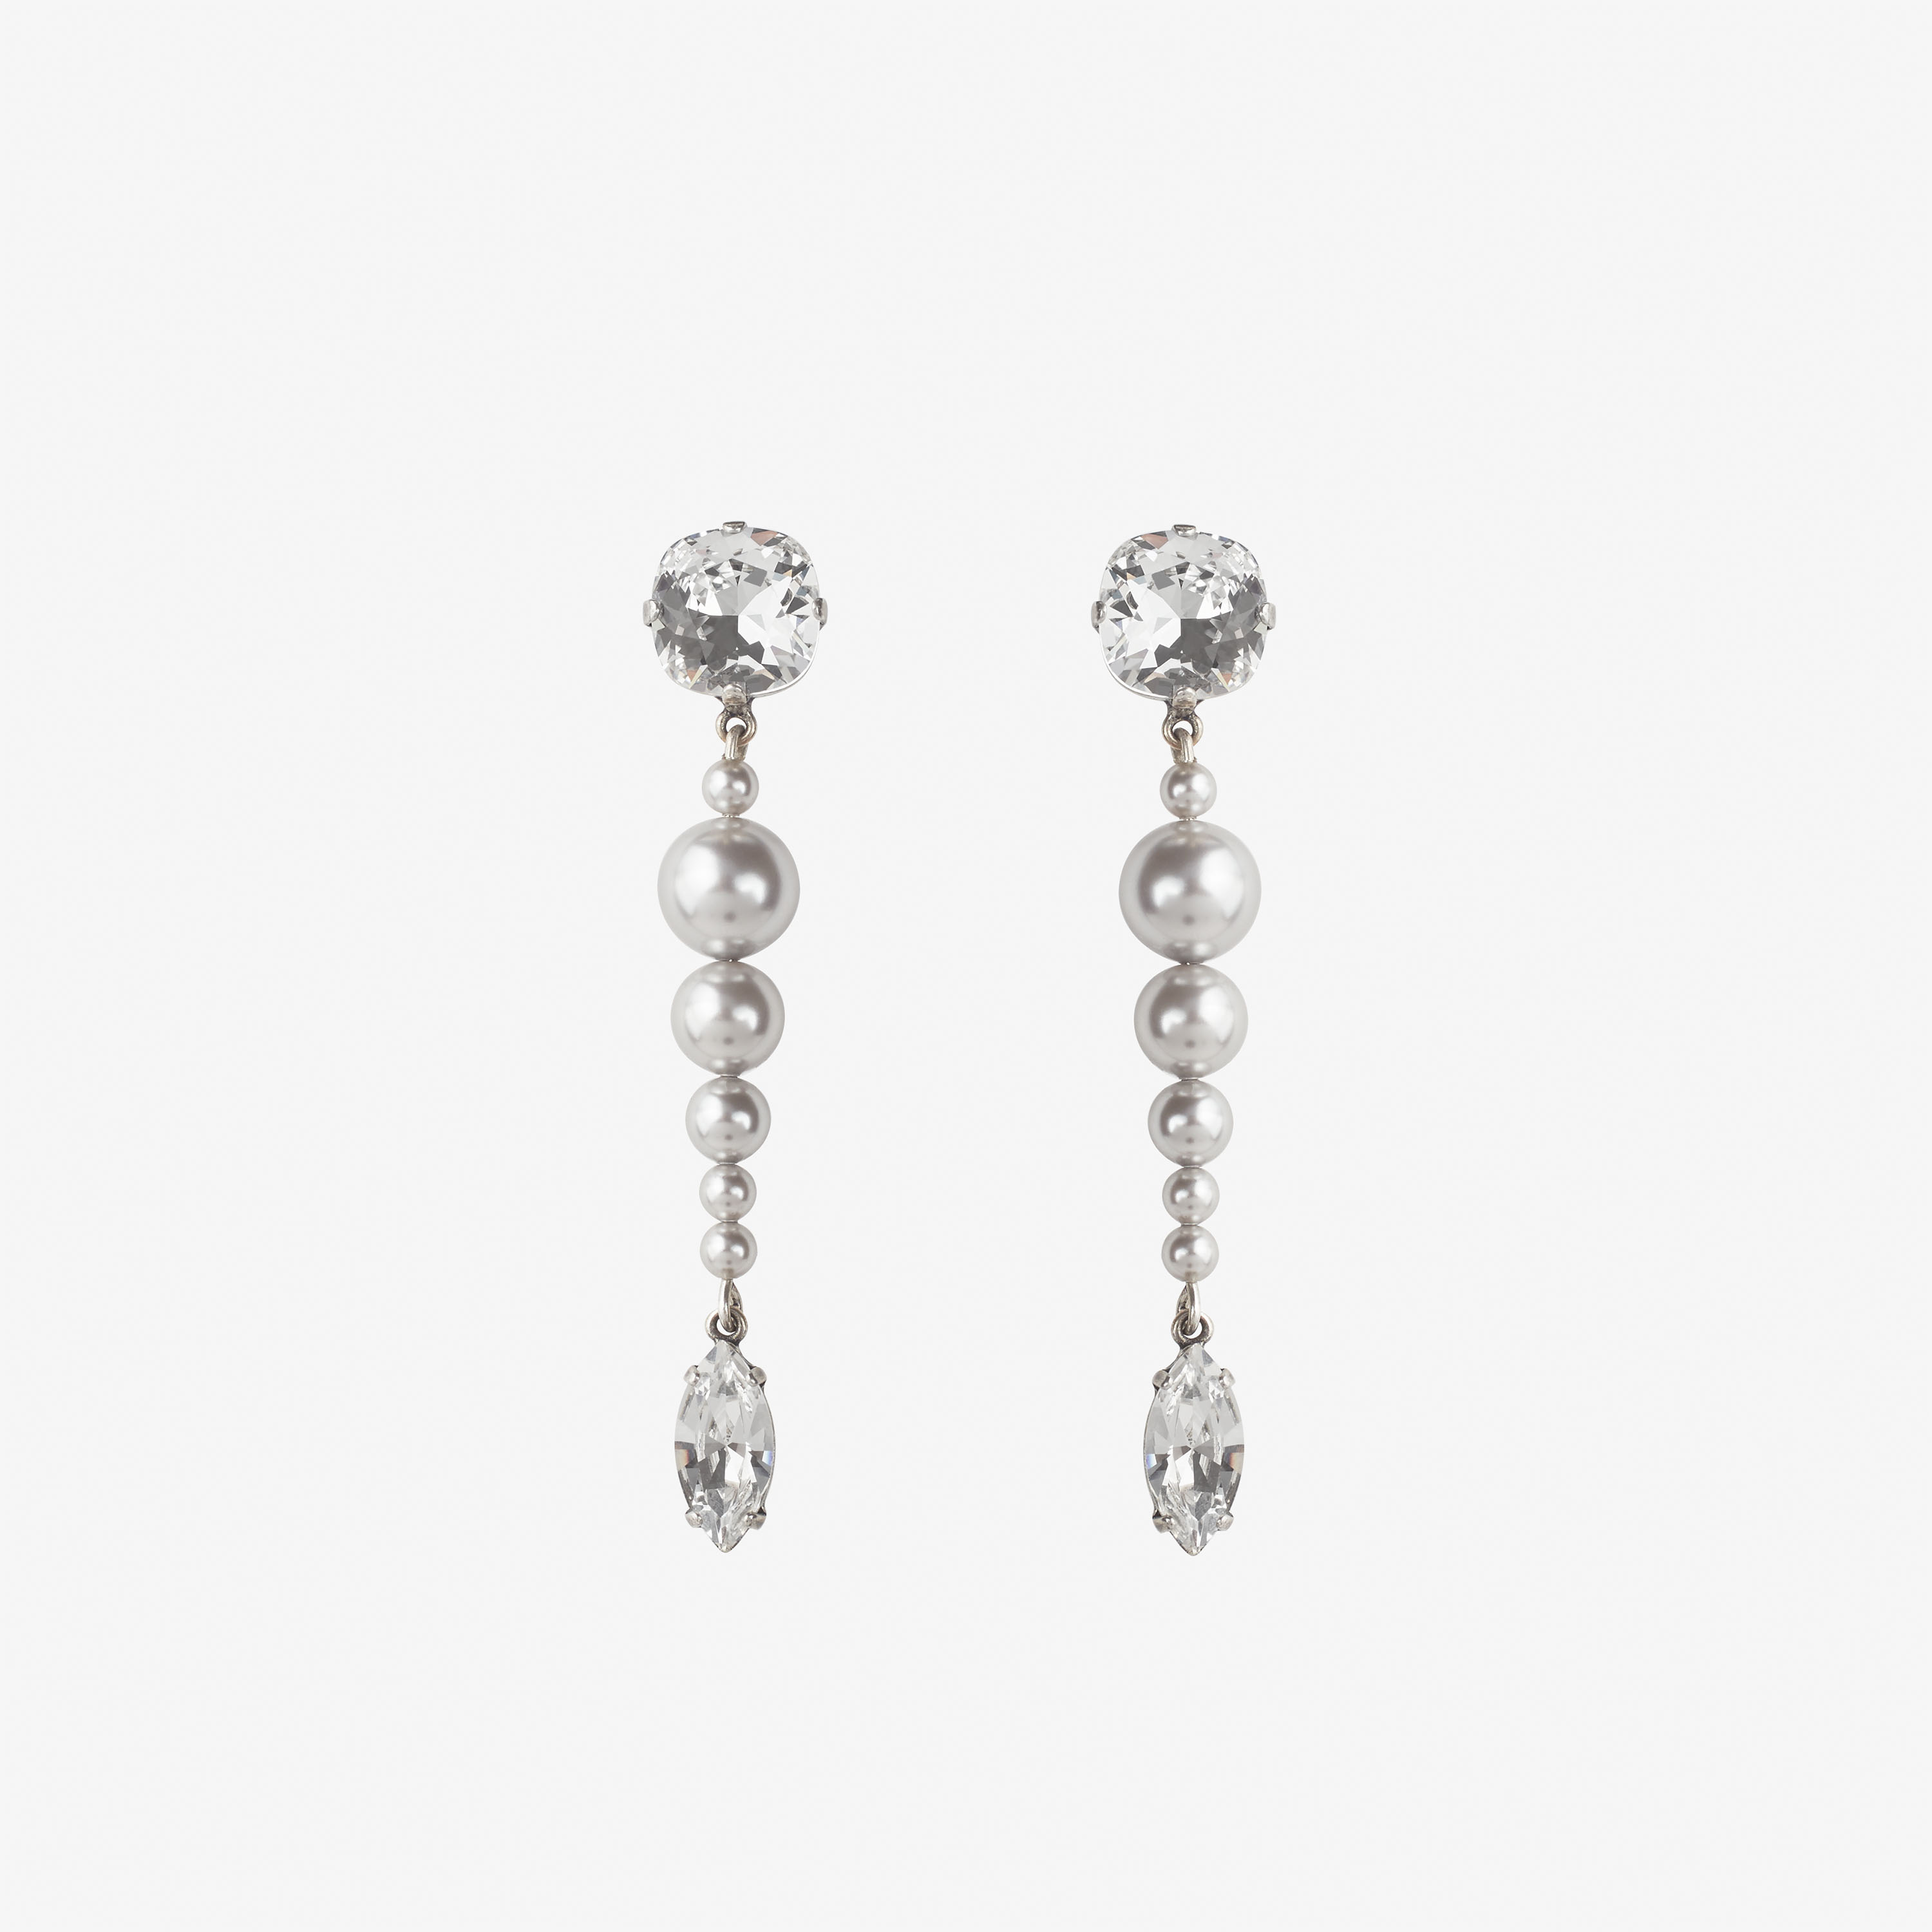 Laimushka fashion jewelry earrings with swarovski pearls and crystals